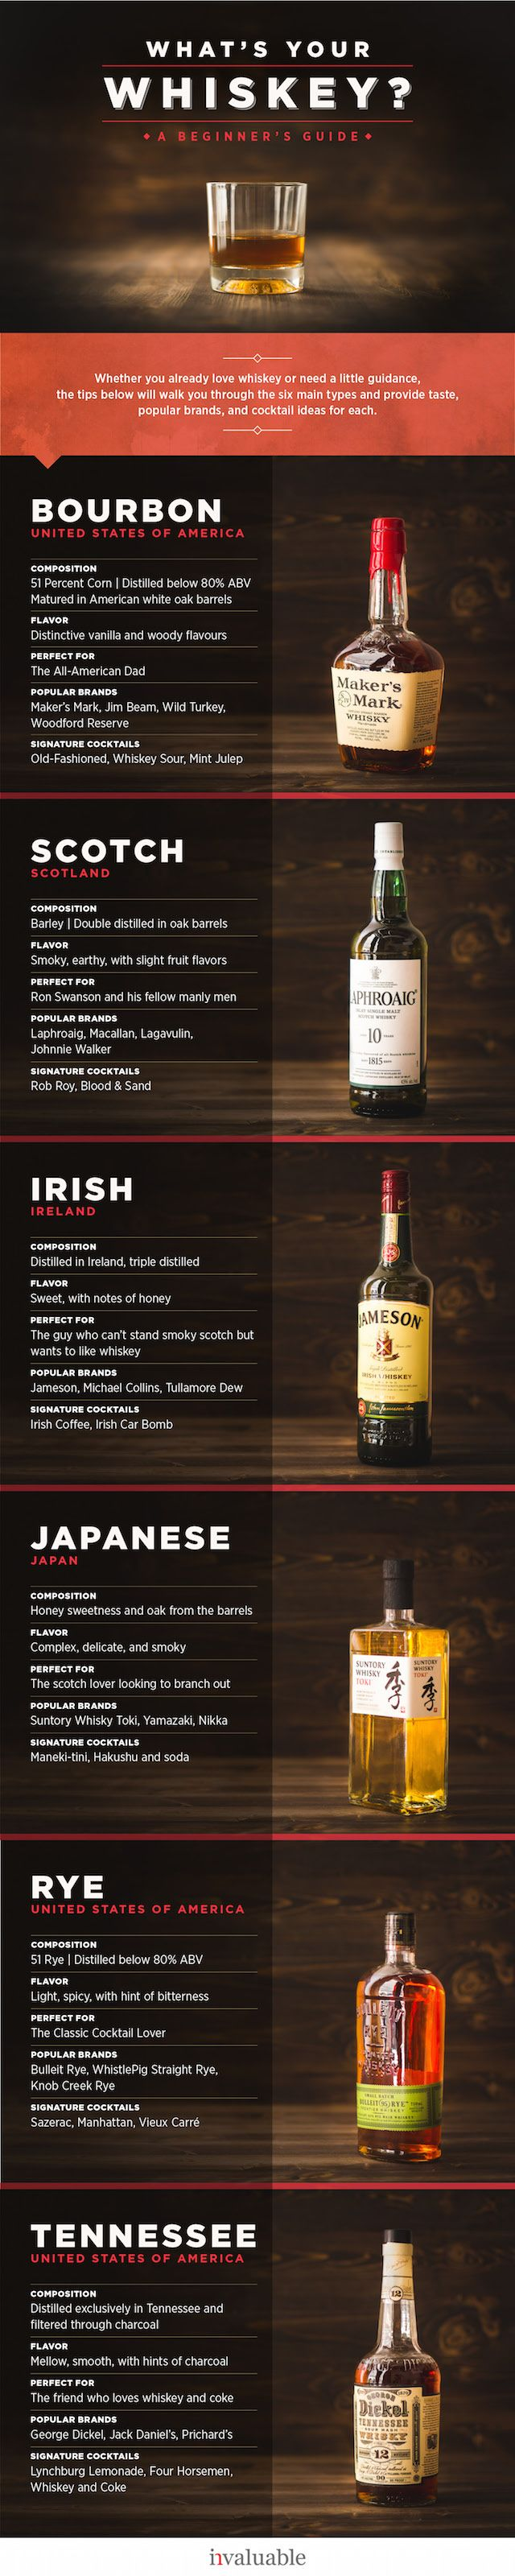 "A Beginner's Guide to Whiskey | The rise of the craft cocktail has paved the way for a new generation of whiskey drinkers. Discover the rich history of this smooth spirit, from its roots in ancient Mesopotamia and the rise of ""moonshine,"" to understanding the difference between types of whiskies, from bourbon and scotch to Irish whisky and Tennessee whiskey."